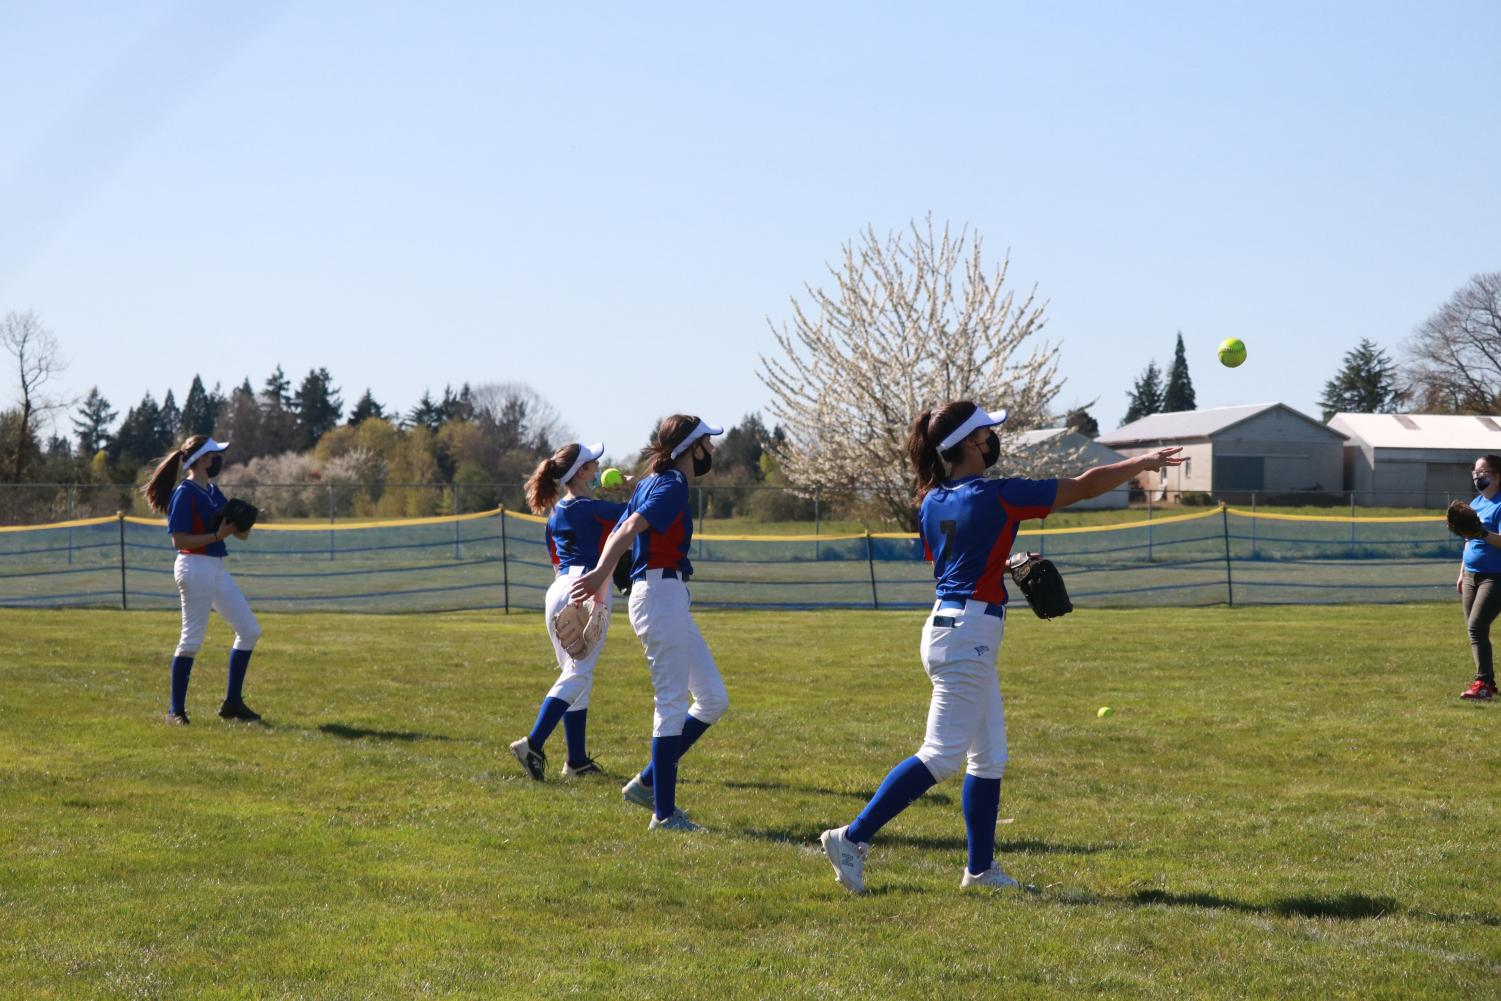 To+Kick+Off+the+Start+of+the+Season%2C+JV+Softball+Wins+Their+Second+Game+Against+Milwaukie